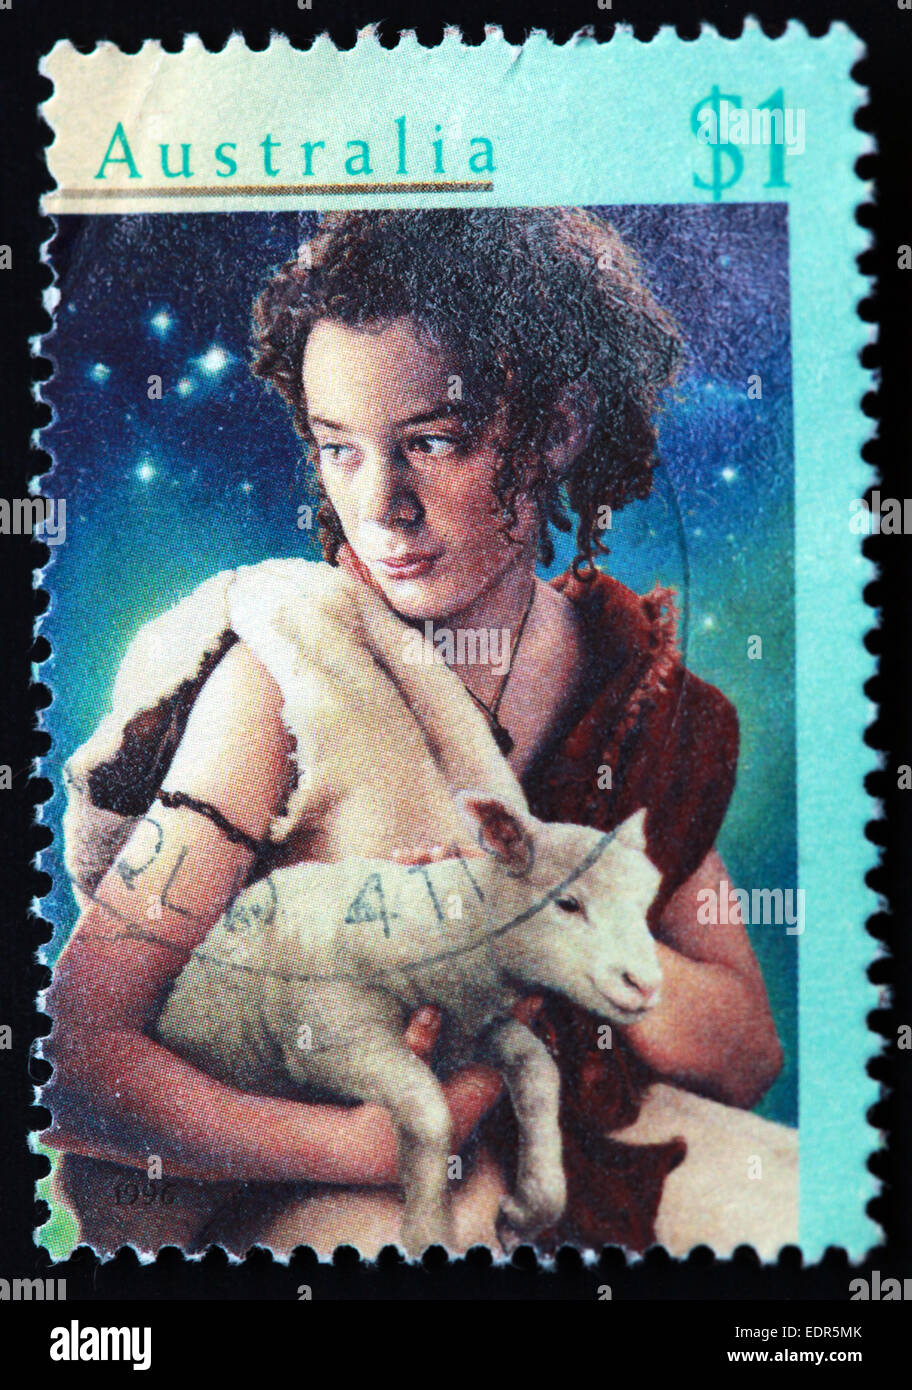 lady,with,lamb,female,girl,shepherd,shepherdess,Used and Postmarked,Used,and,postmarked,perforated,Australia,stamp,Used,and,postmarked,Australia,Austrailian,Stamp,post,posting,mail,hobby,perforation,mark,postage,stamp,print,stamp,cancelled,stamp,payment,correspondence,postman,coll,Gotonysmith,sheep,mutton,innocent,virgin,virginal,stamp,print,stamp,cancelled,canceled,stamp,payment,correspondence,postman,collection,collector,philately,philatelist,letter,price,history,retro,Australian,Vintage,delivery,date,relationship,communication,Oz,Australia,DownUnder,classic rare unique Austrailian financial,investment,invest,value,British,empire,nation,canceled,printed on black background,close-up,closeup,close,up,sent,send,philately,mailing,shipping,postoffice,office,isolated,circa,special,colour,color,postmarked,marked,airmail,aged,antique,retro,cutting,historic,old,stamps,collection,stamp collection,album,Timbre,Sello,Stempel,Selo,Down Under,Black background